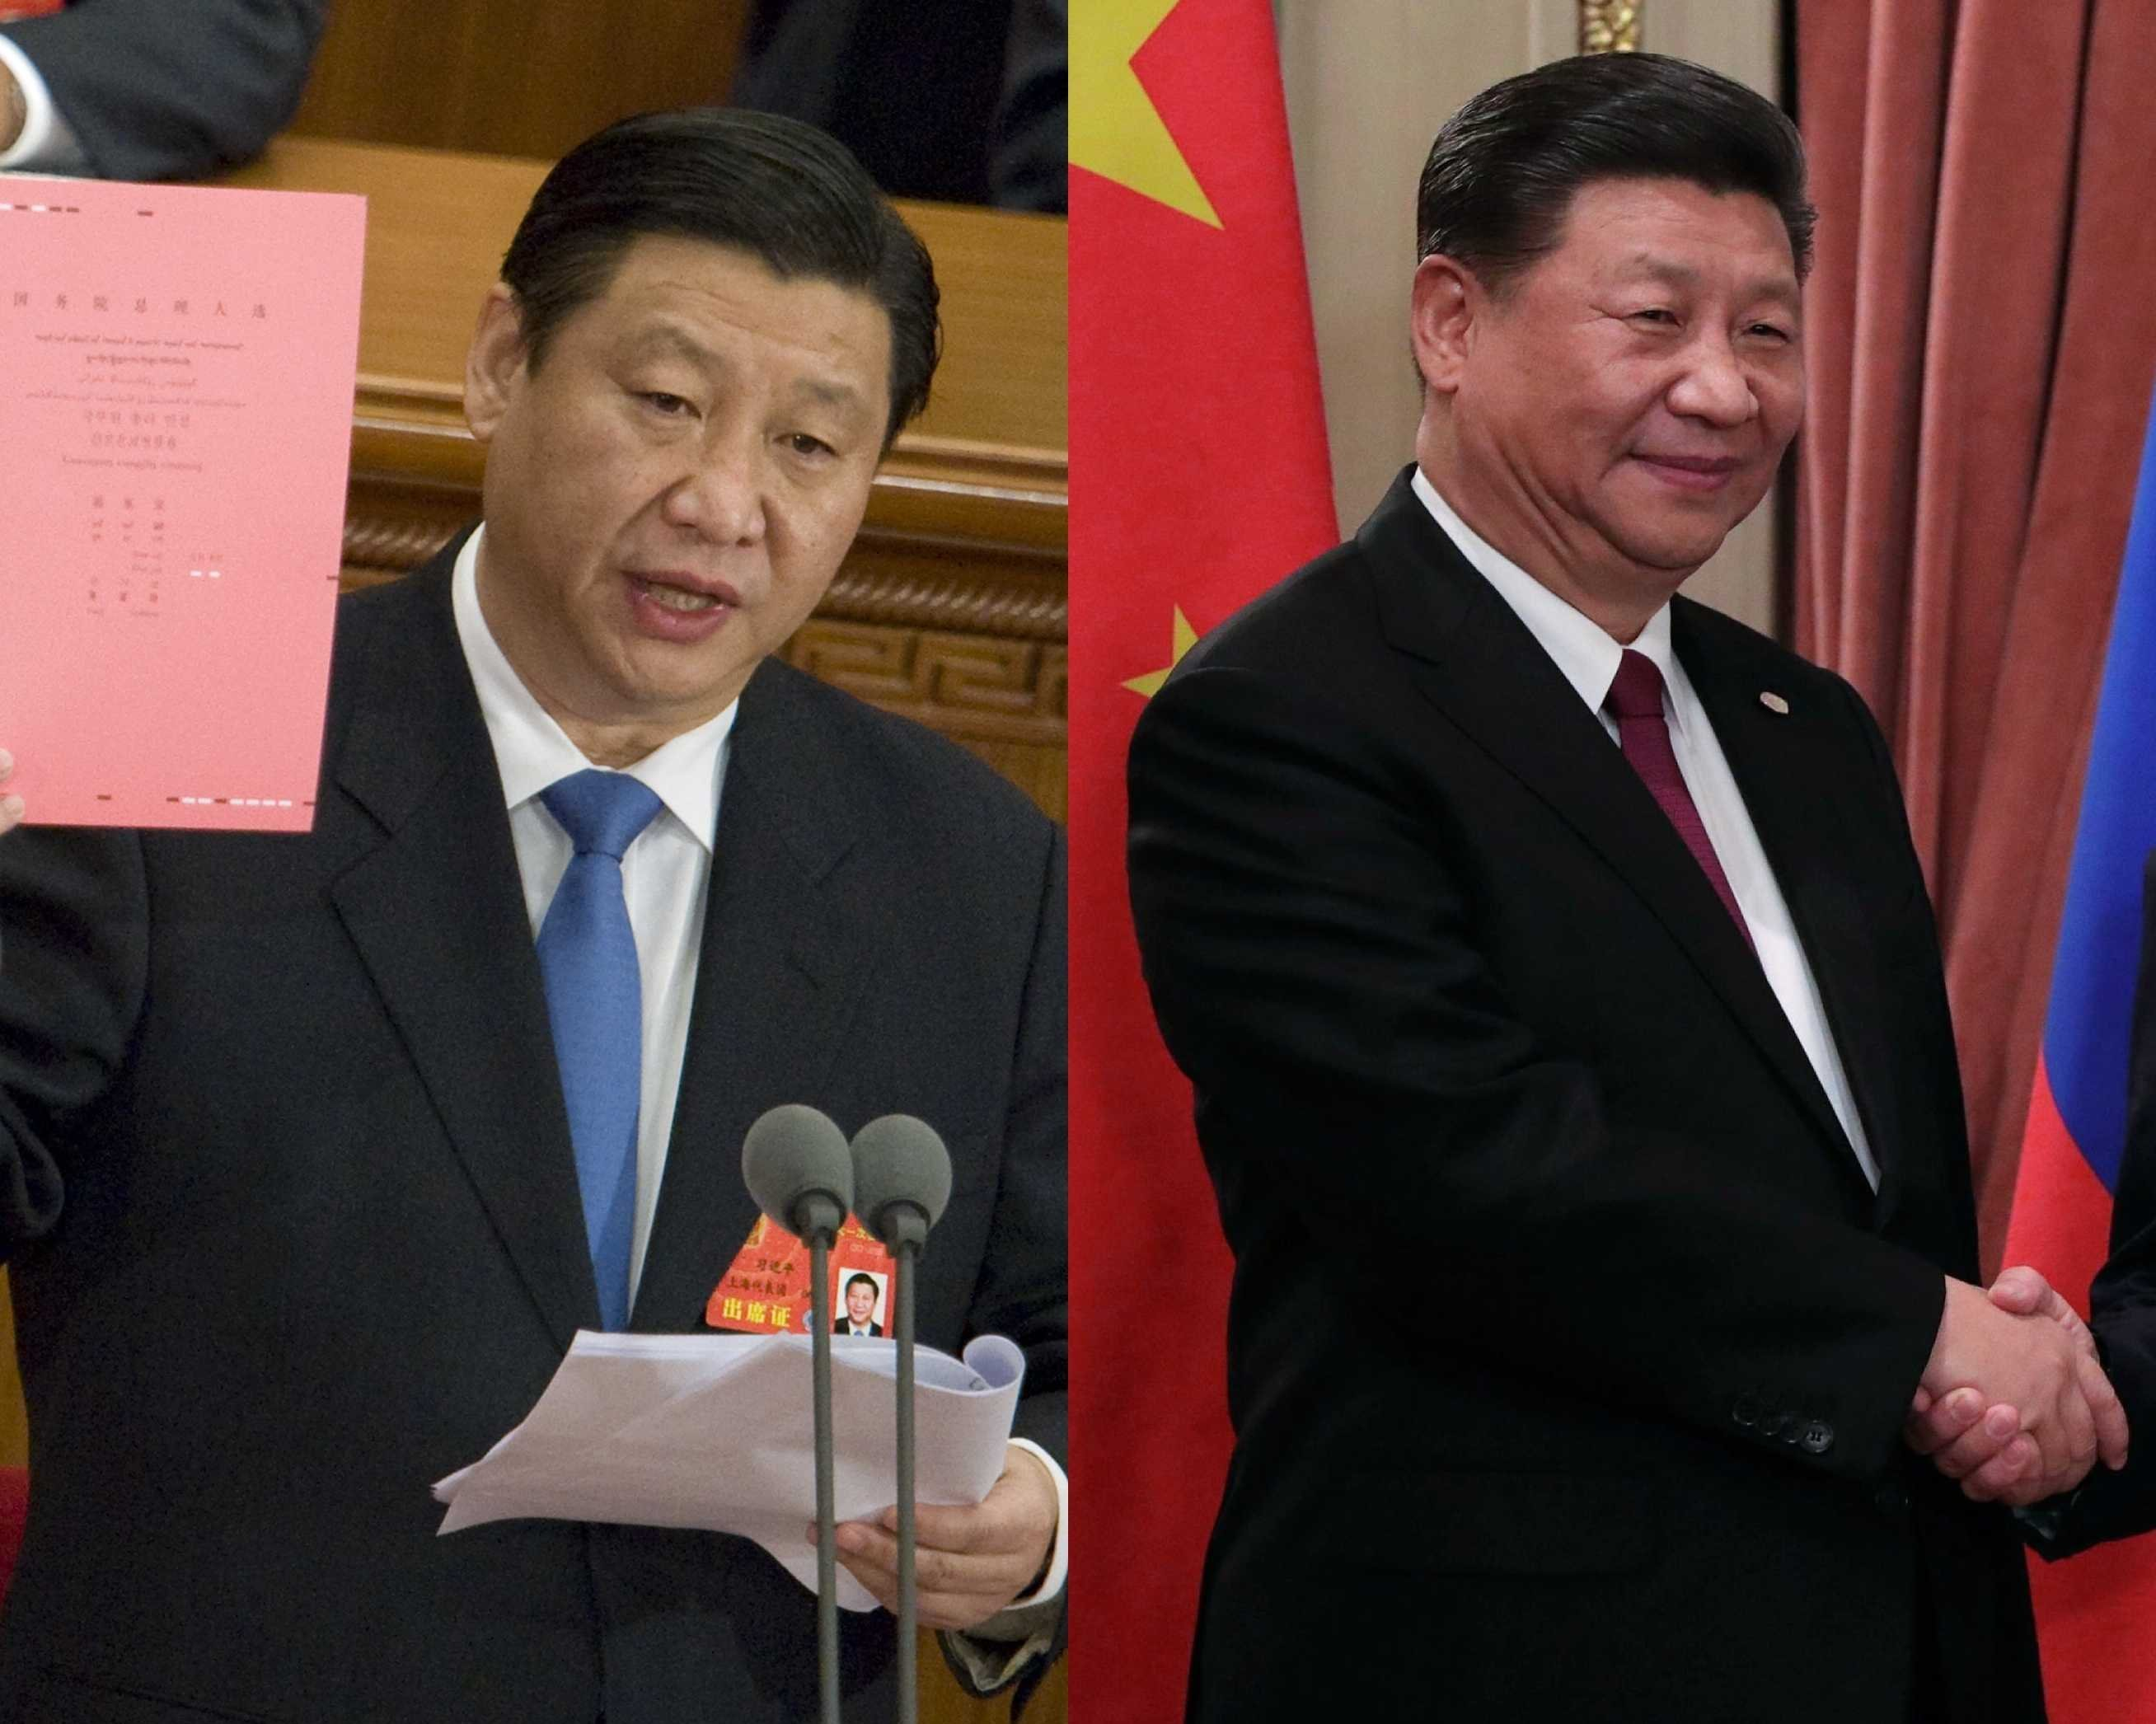 El actual presidente de China, Xi Jinping, en el 2008 / 2018